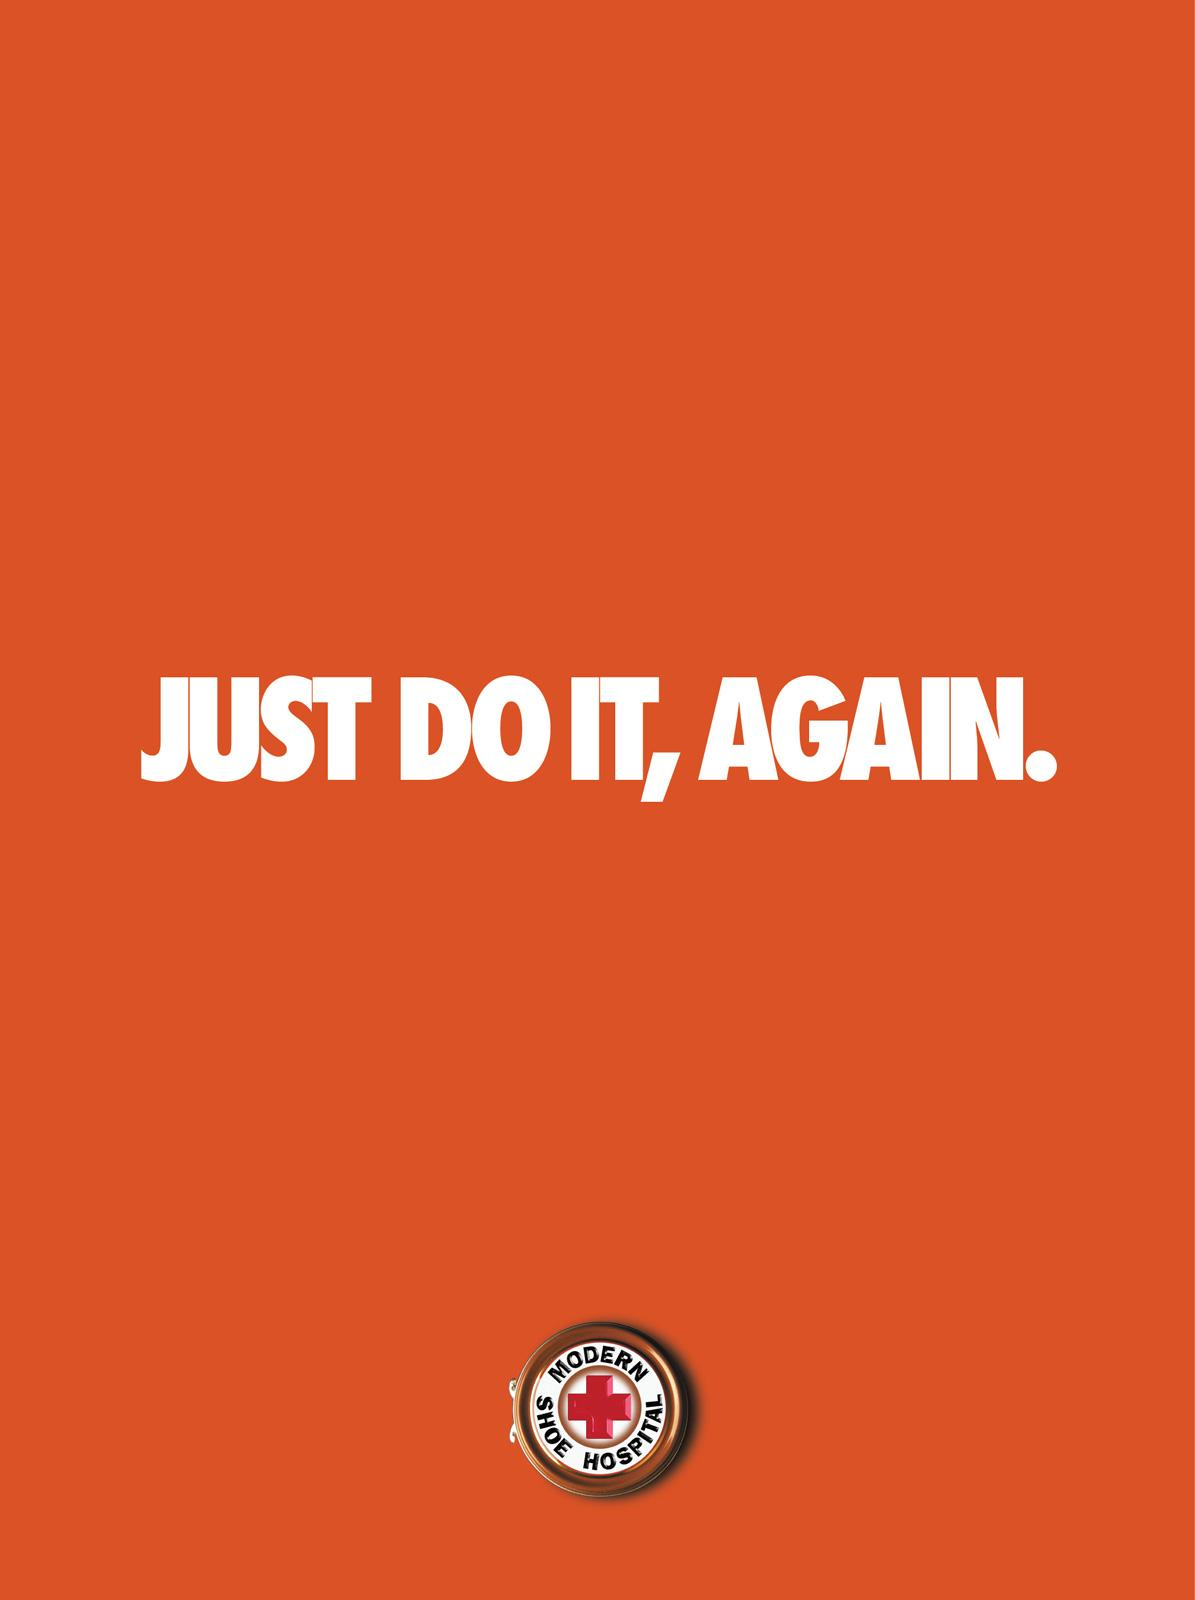 Modern Shoe Hospital Print Ad -  Just Do It, Again